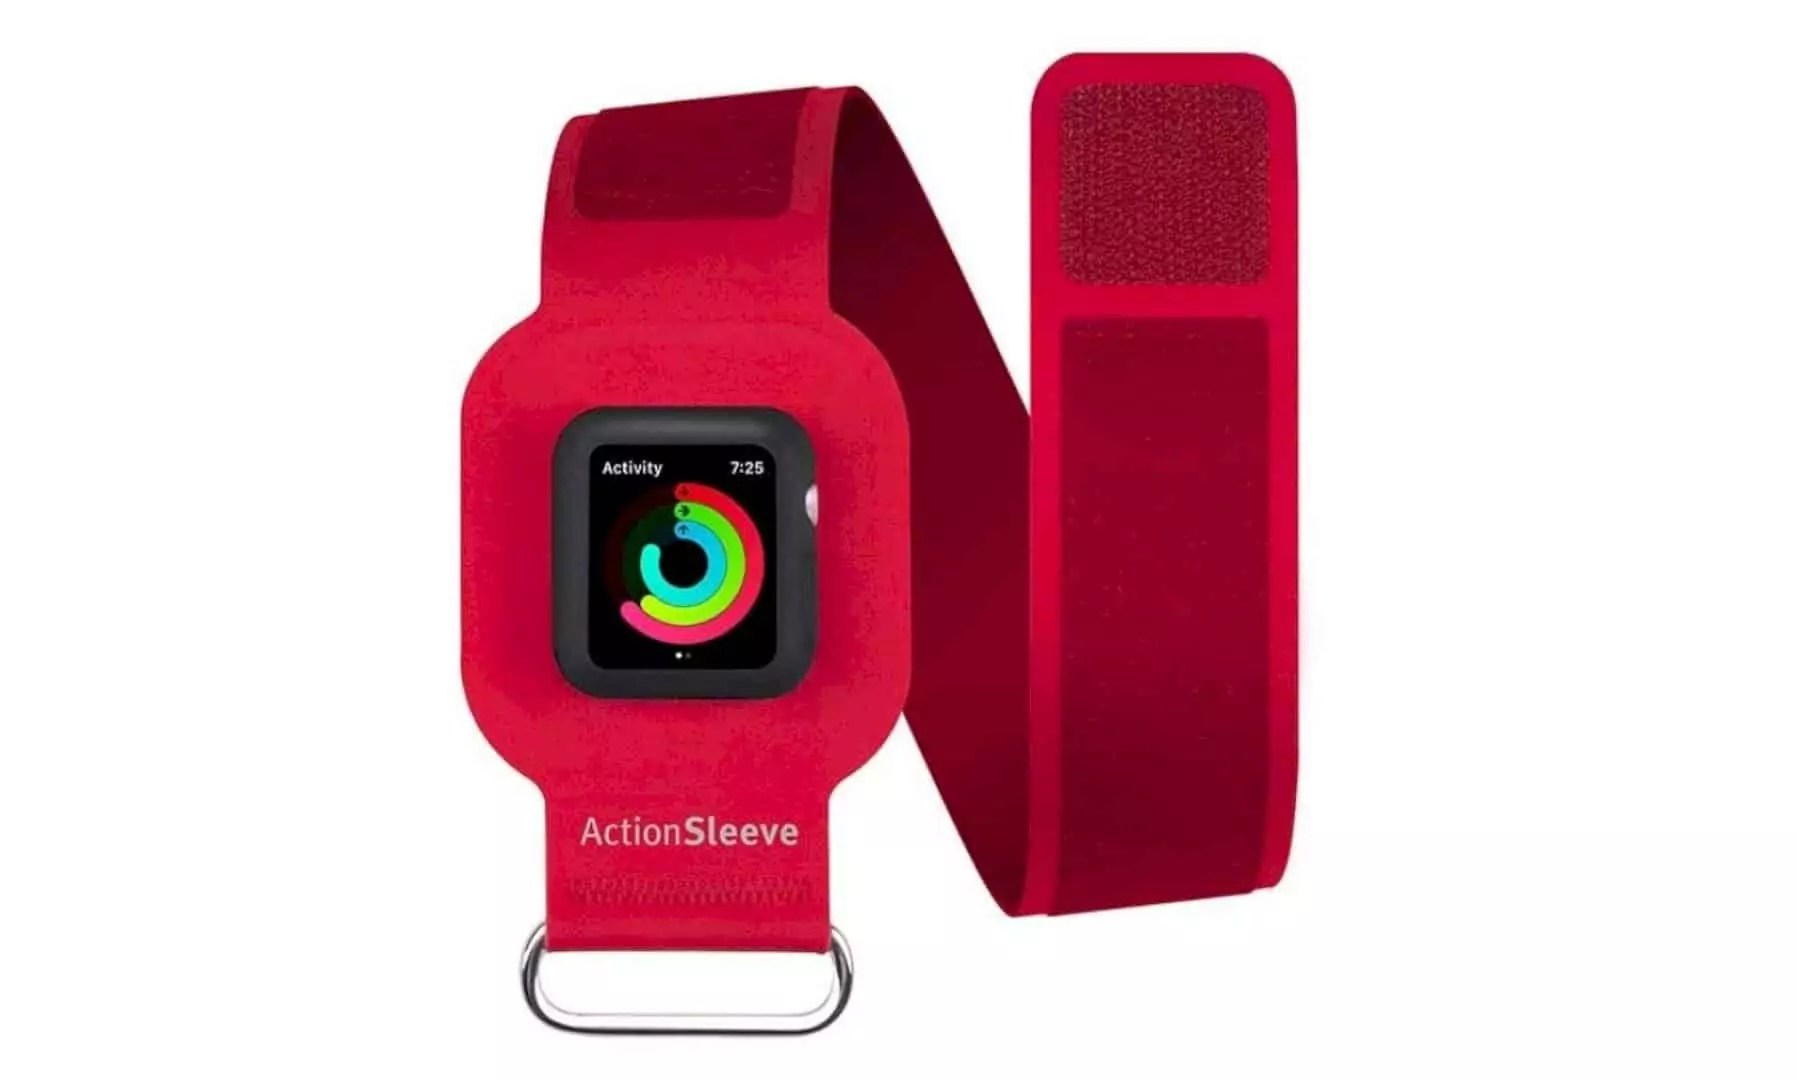 ActionSleeve Armband: Viewable and Controllable Strap for Apple Watch